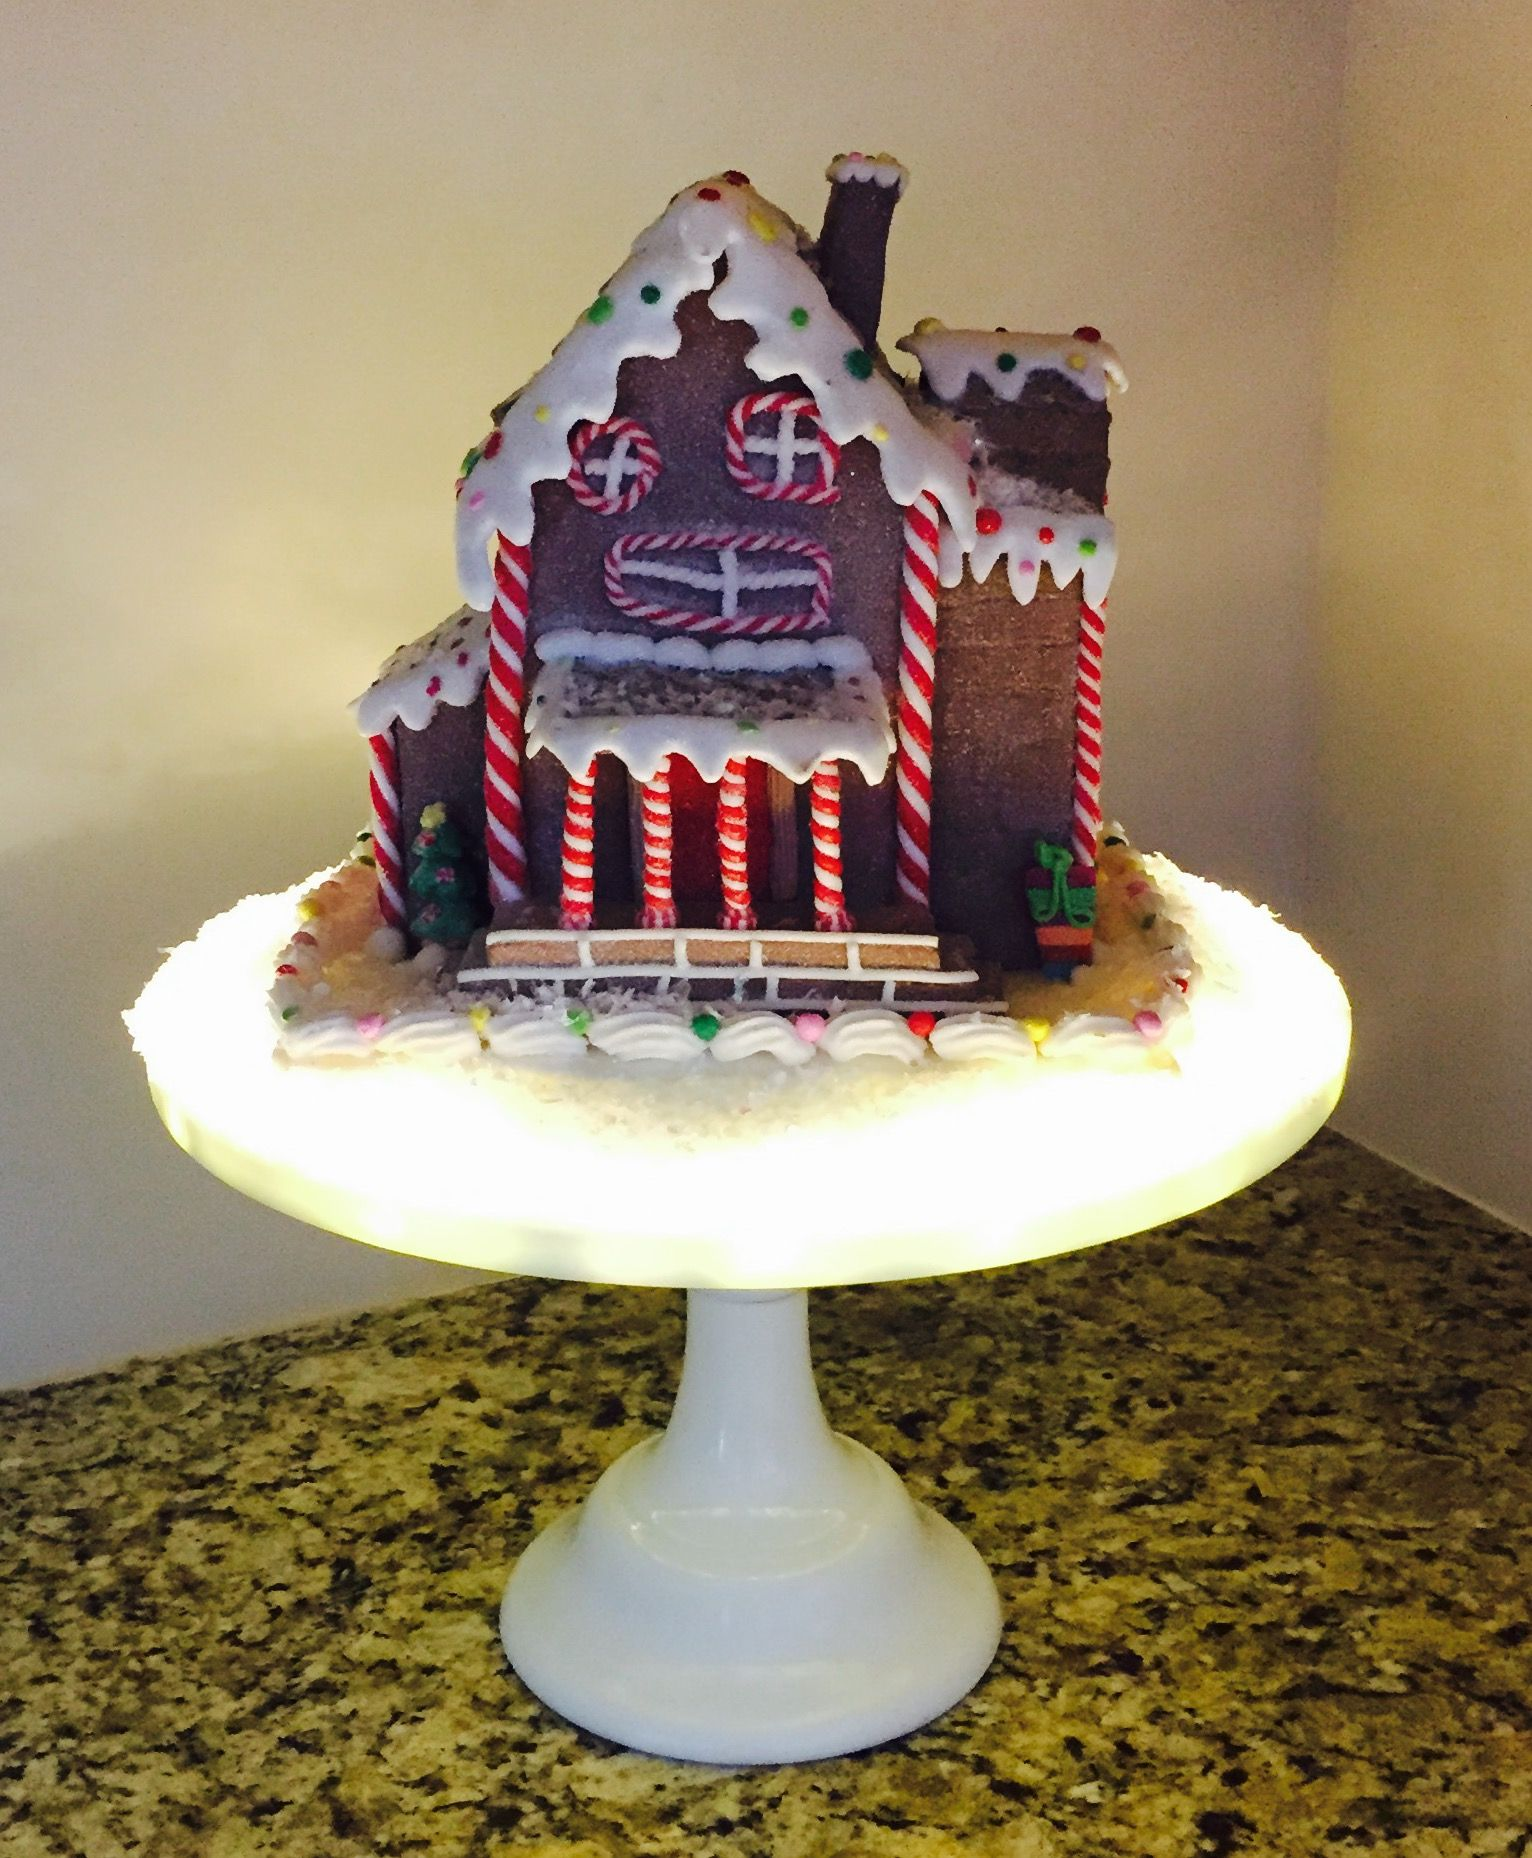 Created a base for my gingerbread house with LED craft